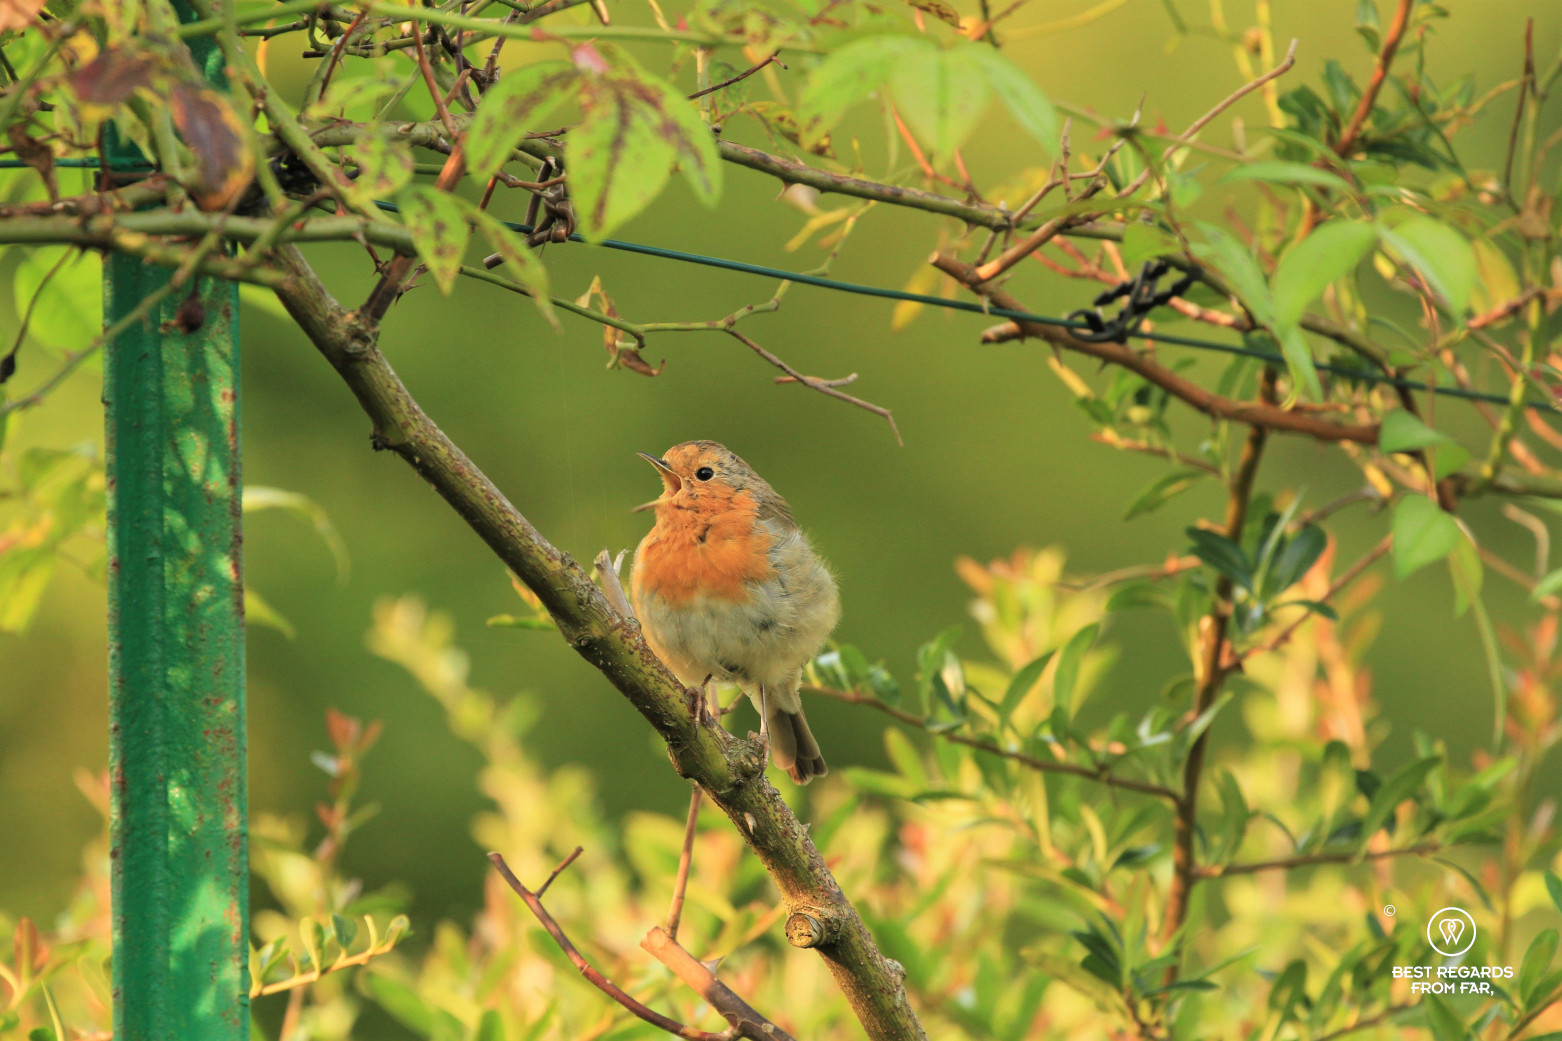 A robin singing on a branch in Claude Monet's garden in Giverny